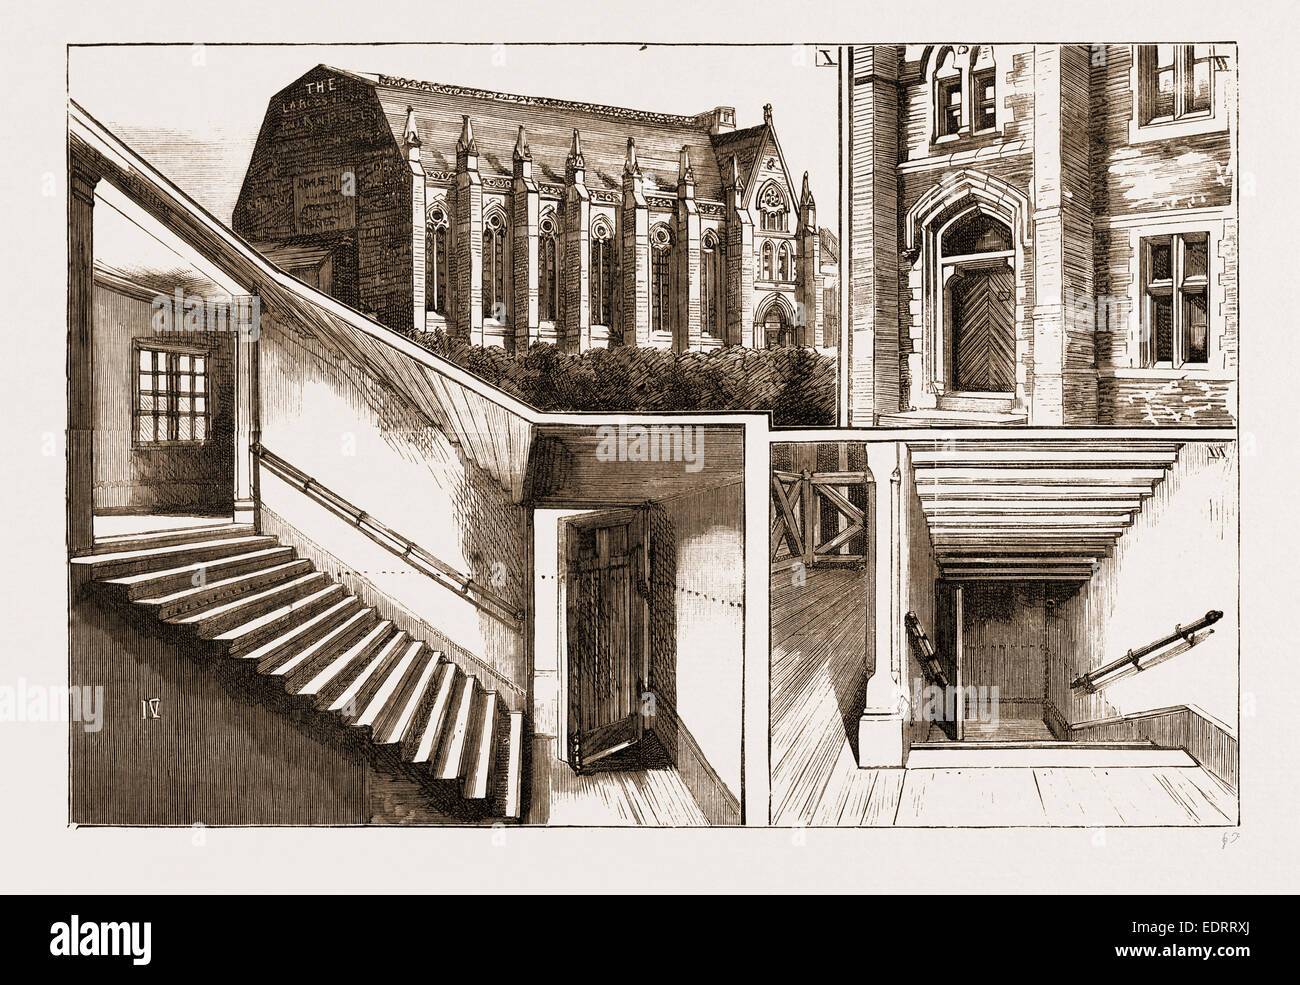 THE TERRIBLE DISASTER AT SUNDERLAND, UK, 1883: 1. Exterior View of the Victoria Hall. 2. External Door of the Hall - Stock Image